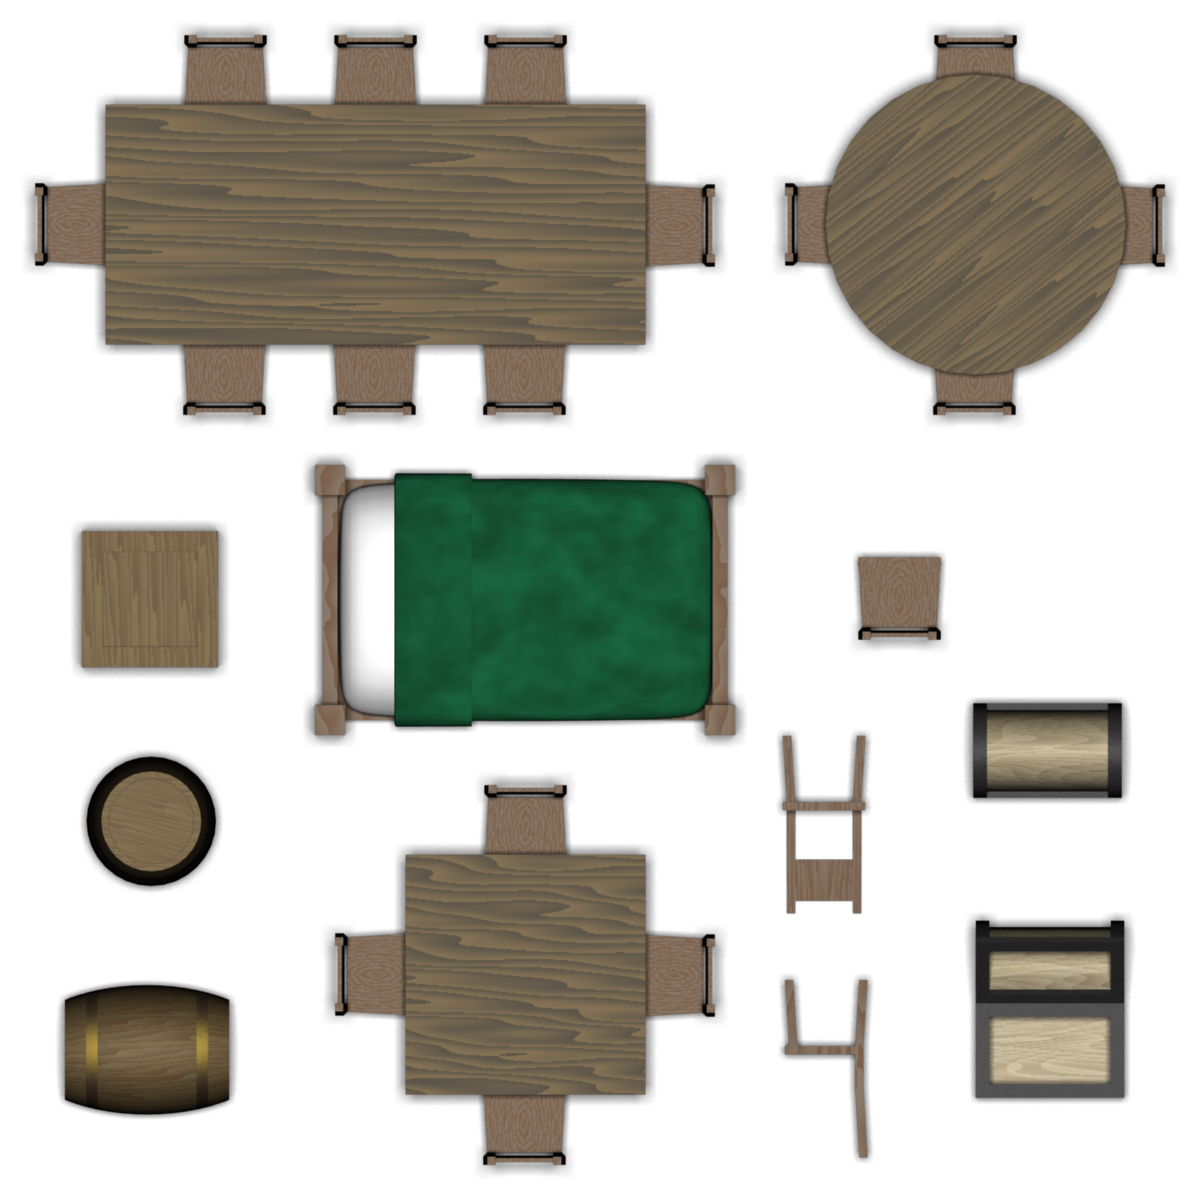 Furniture floor png. Dungeon set by pfunked